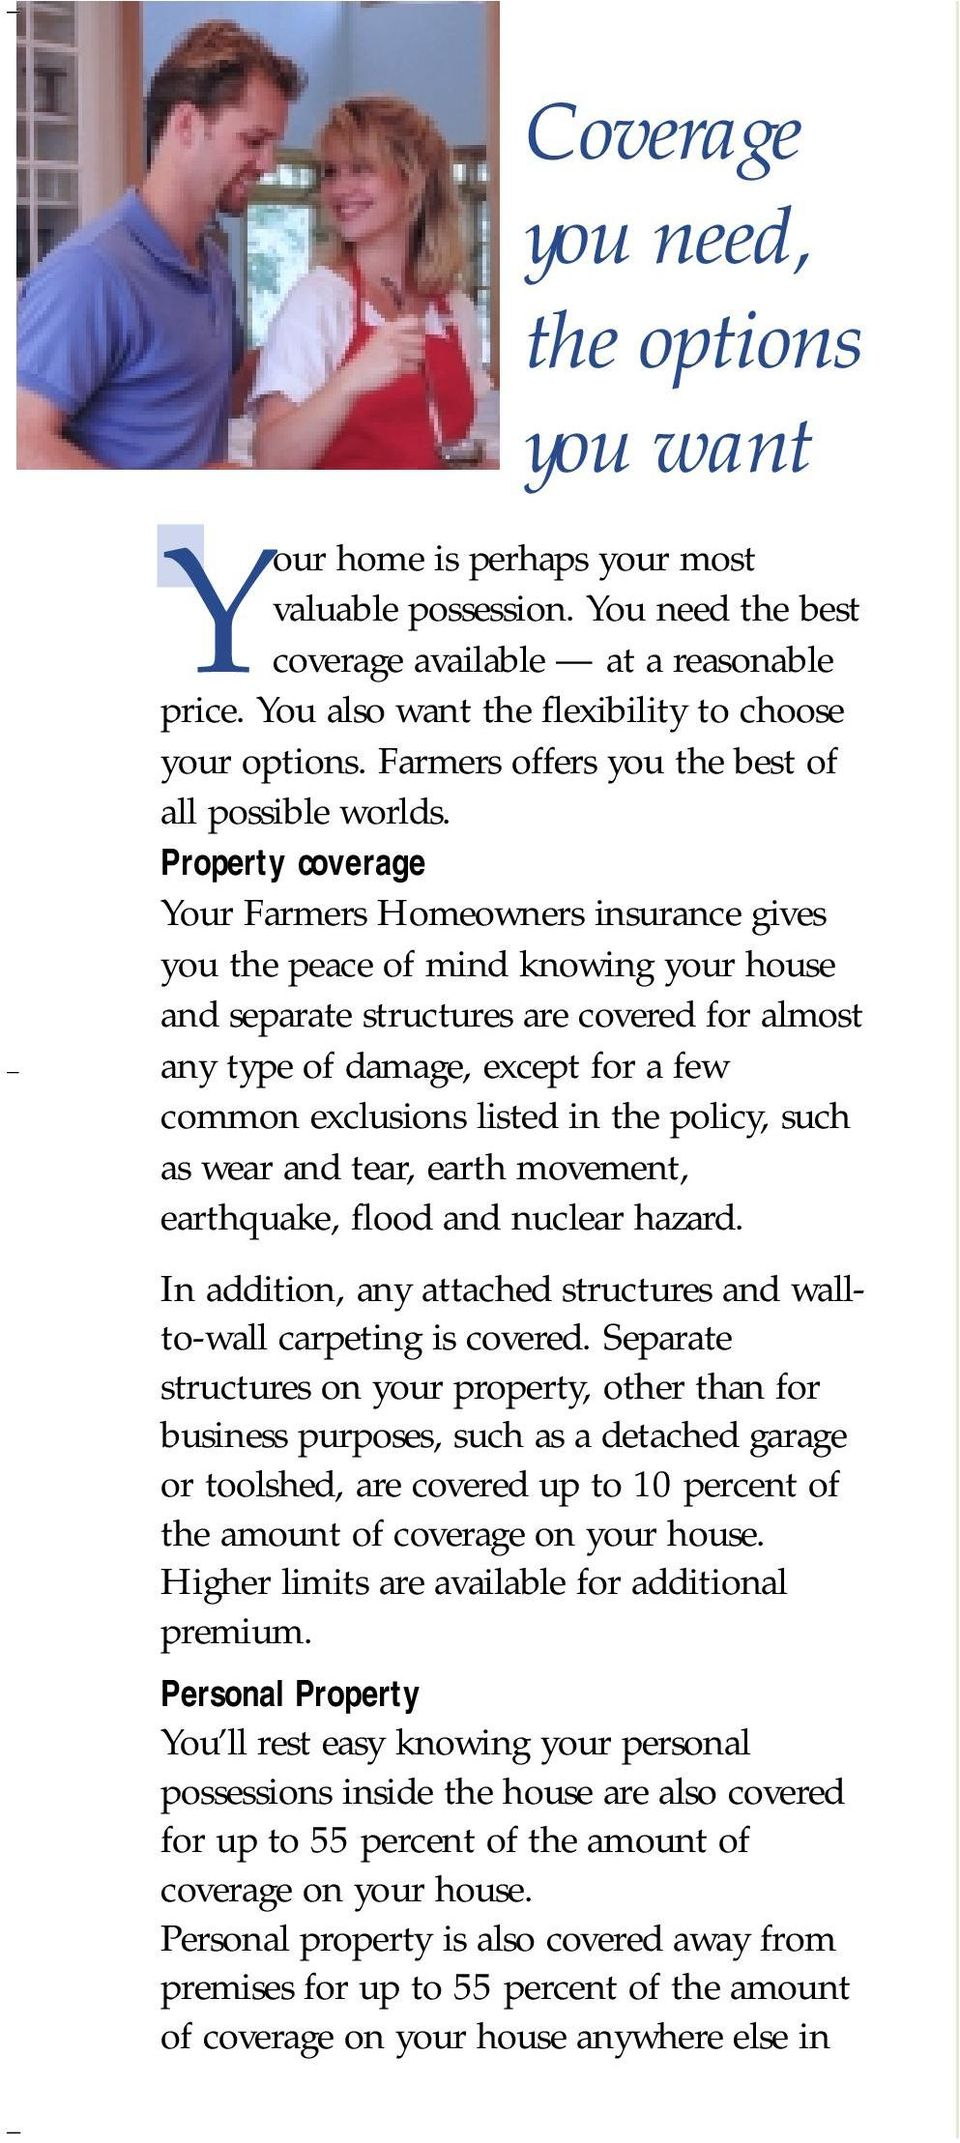 Property coverage Your Farmers Homeowners insurance gives you the peace of mind knowing your house and separate structures are covered for almost any type of damage, except for a few common